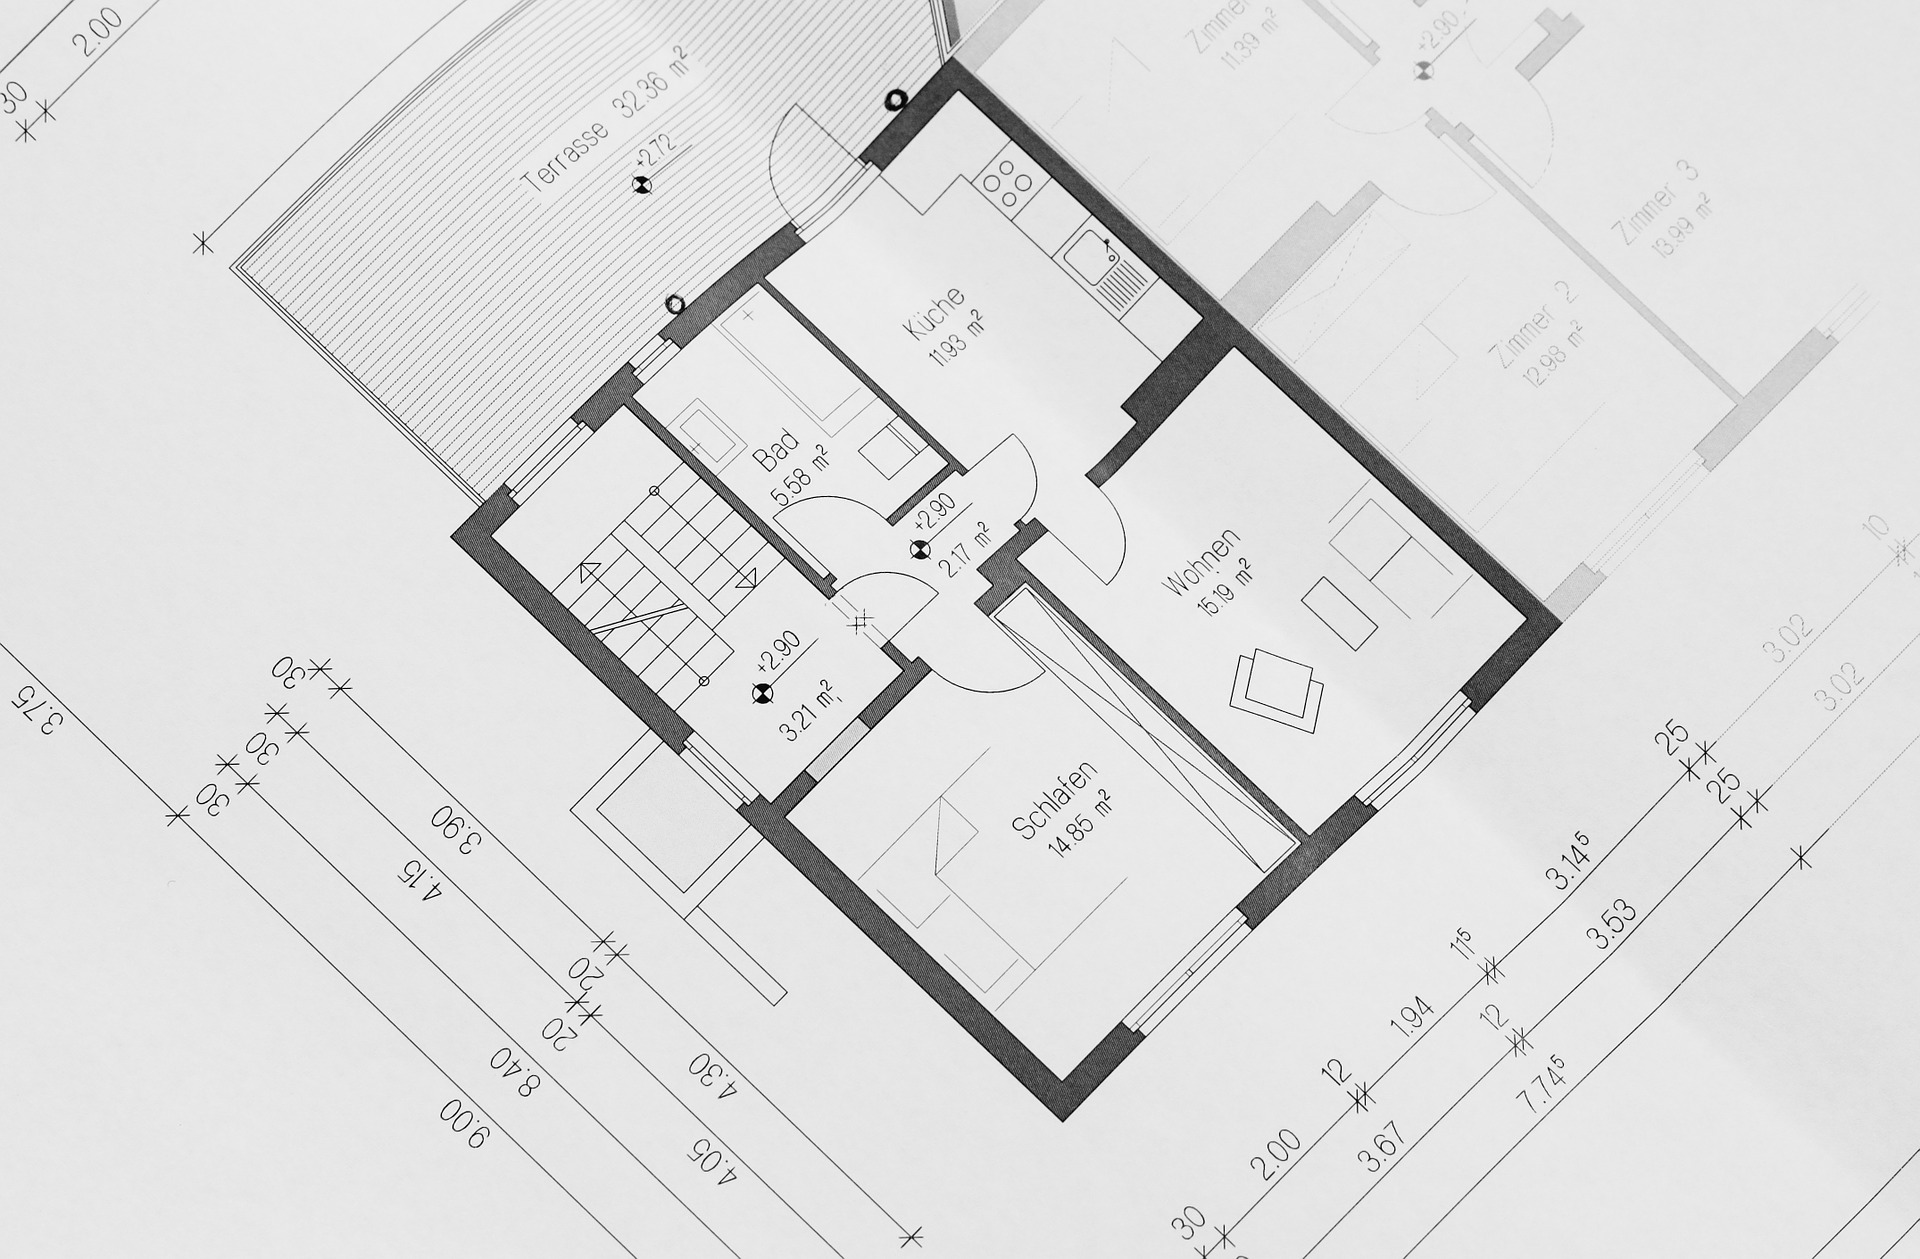 1. PROPERTY WALK THROUGH - During our first meeting, we walk though your property together while discussing your goals, requirements and concerns. I will also provide recommendations, such as staging and reconditioning, that will bring value to your property.